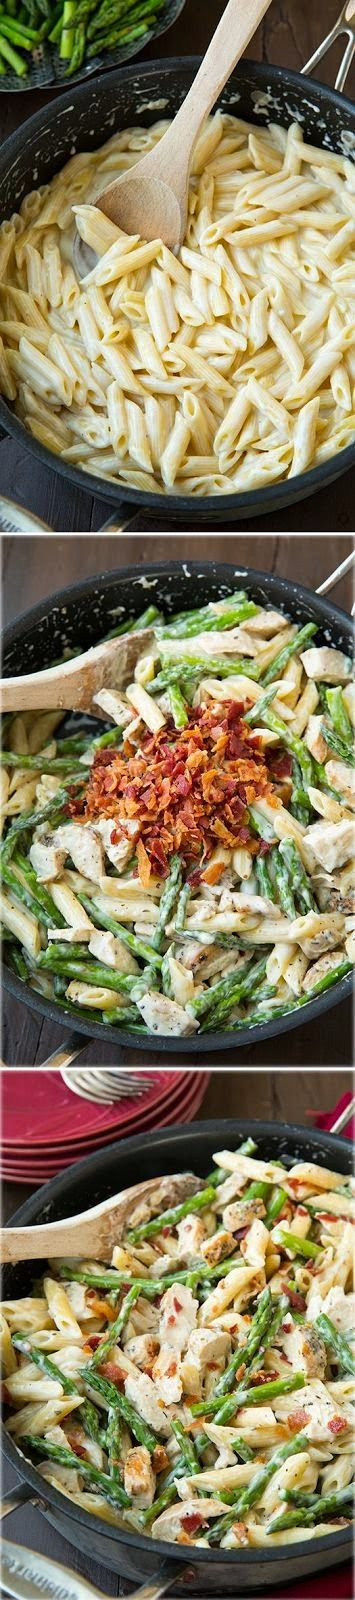 Creamy Chicken and Asparagus Pasta with Bacon Made 9-21-15 ALL the boys liked. Used fresh basil from the garden and garlic salt to cook the chicken. Chicken had great flavor, the noodles could have used a little but more salt but with the bacon and chicken it melded together alright.